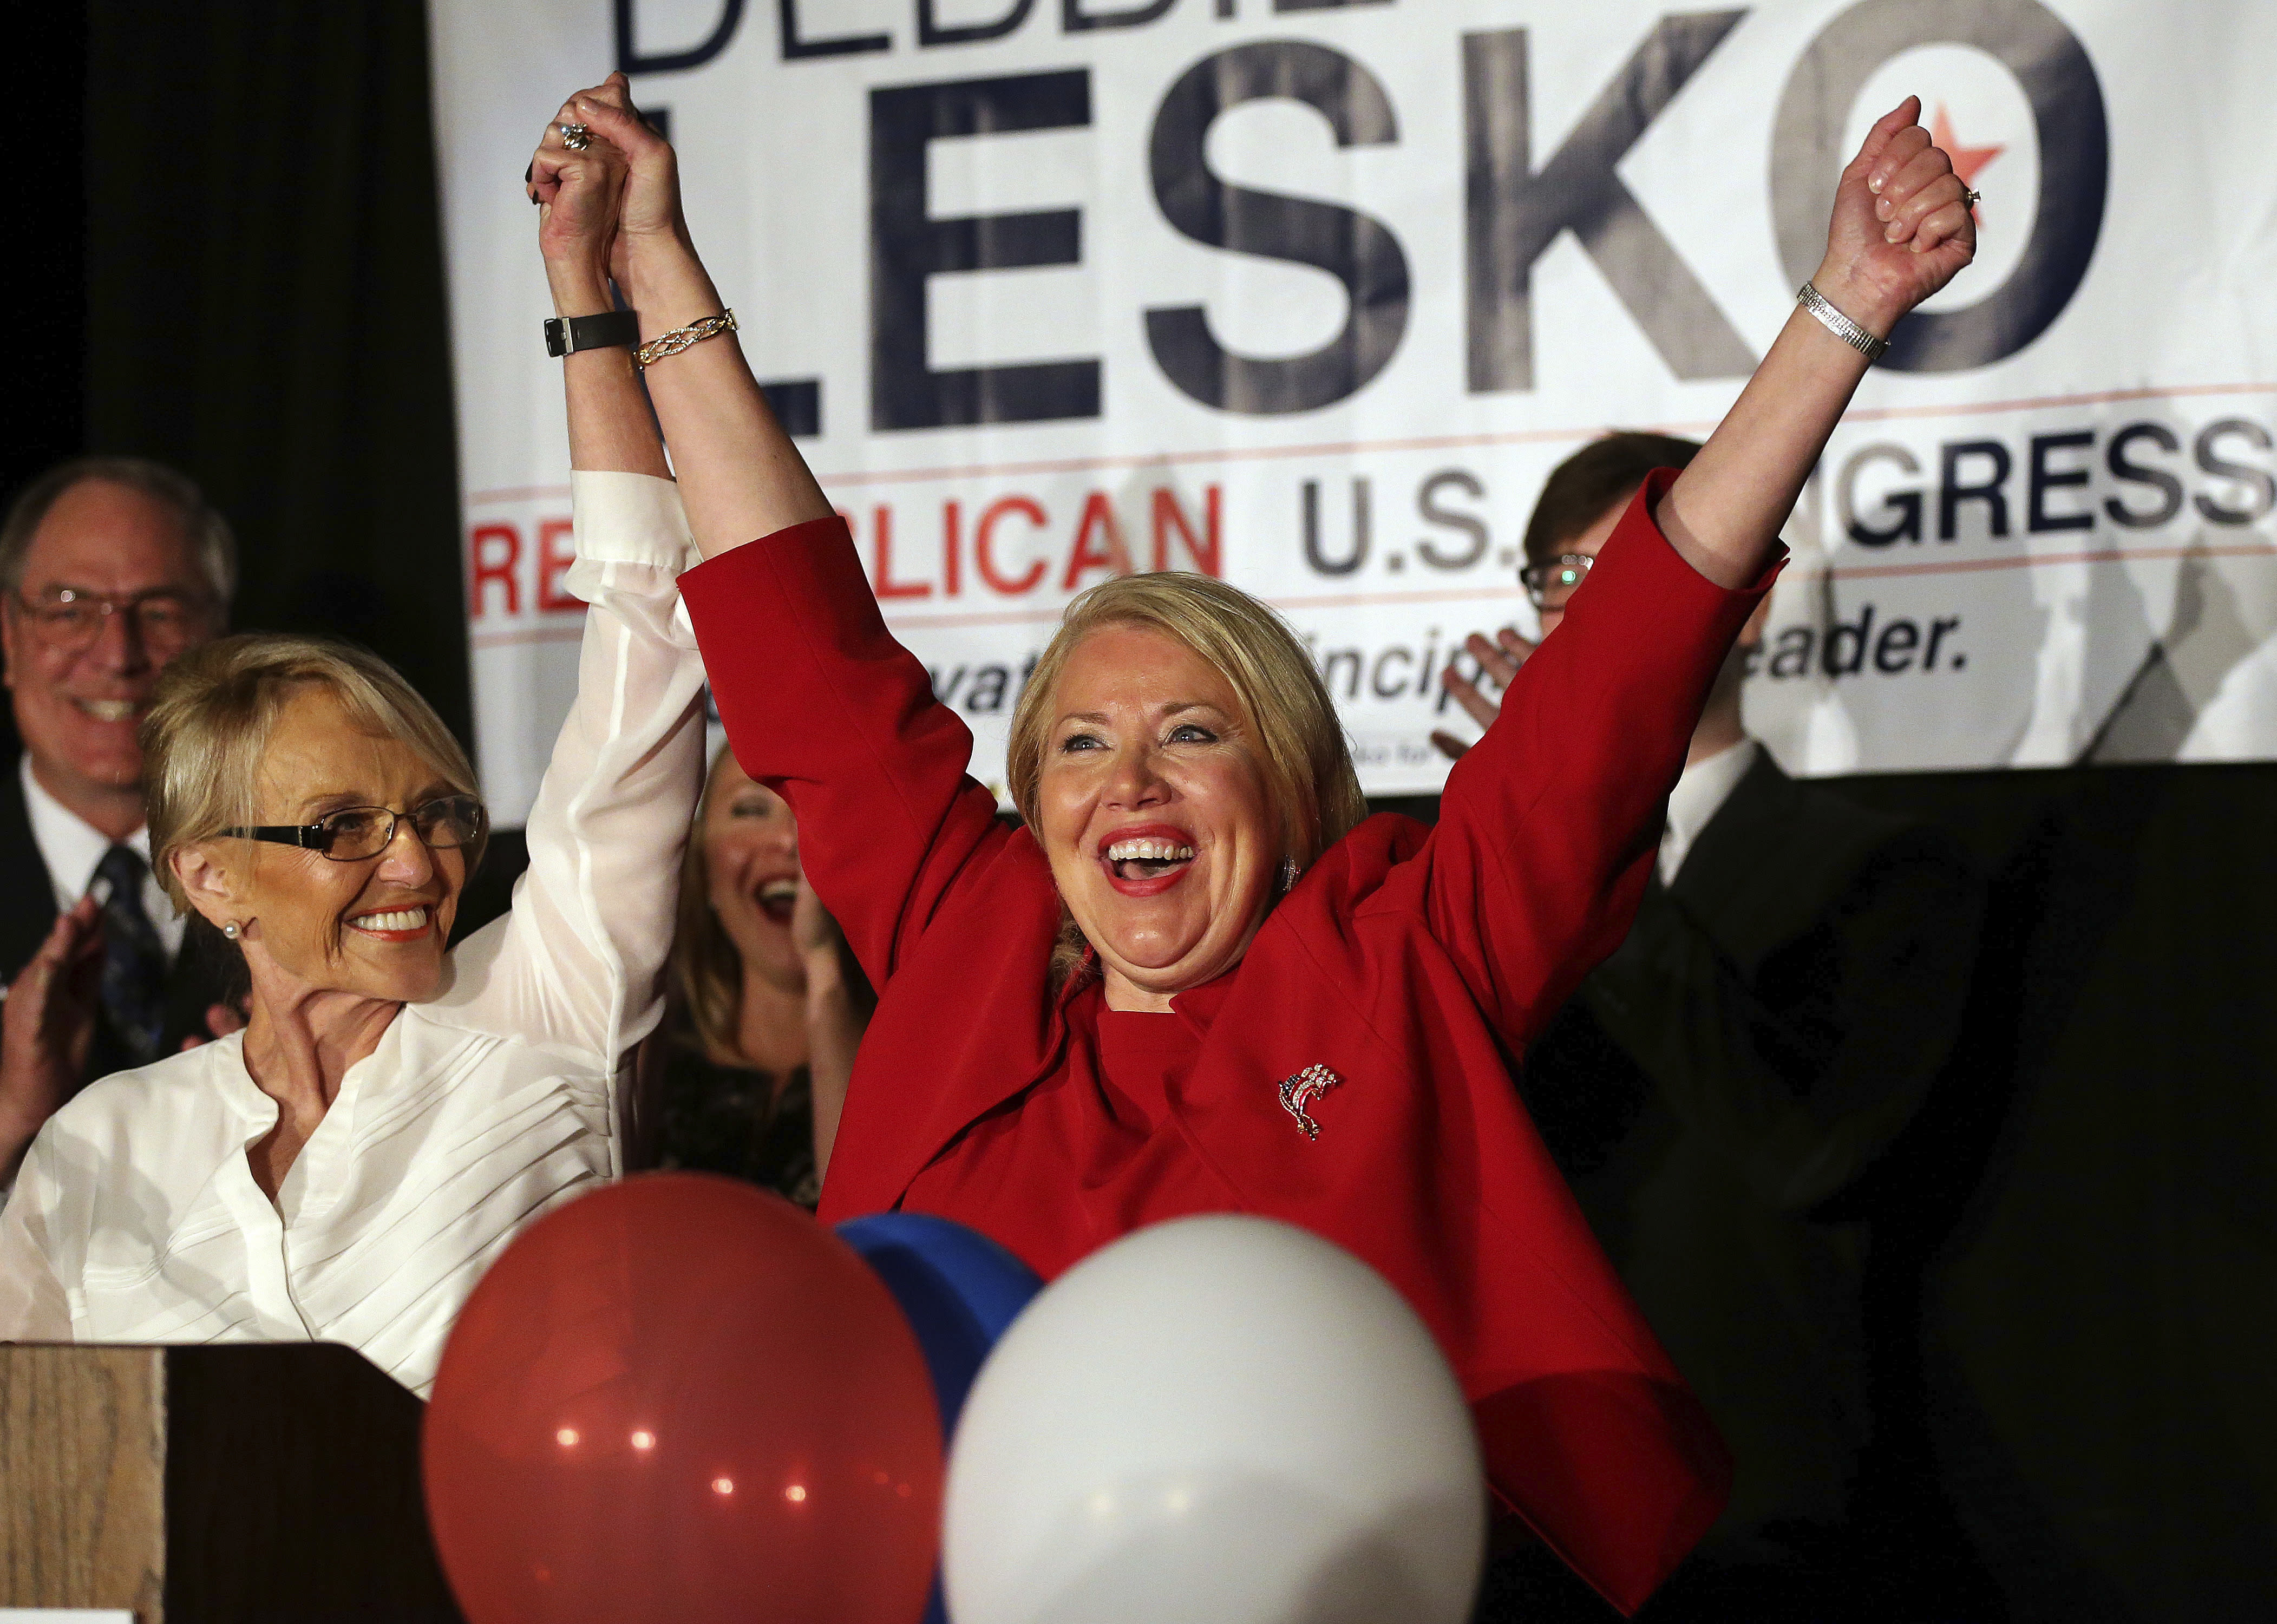 <p> Republican U.S. Congressional candidate Debbie Lesko, right, celebrates her win with former Arizona Gov. Jan Brewer at her home, Tuesday, April 24, 2018, in Peoria, Ariz. Lesko ran against Democratic candidate Hiral Tipirneni for Arizona's 8th Congressional District seat being vacated by U.S. Rep. Trent Franks, R-Arizona. (AP Photo/Matt York) </p>